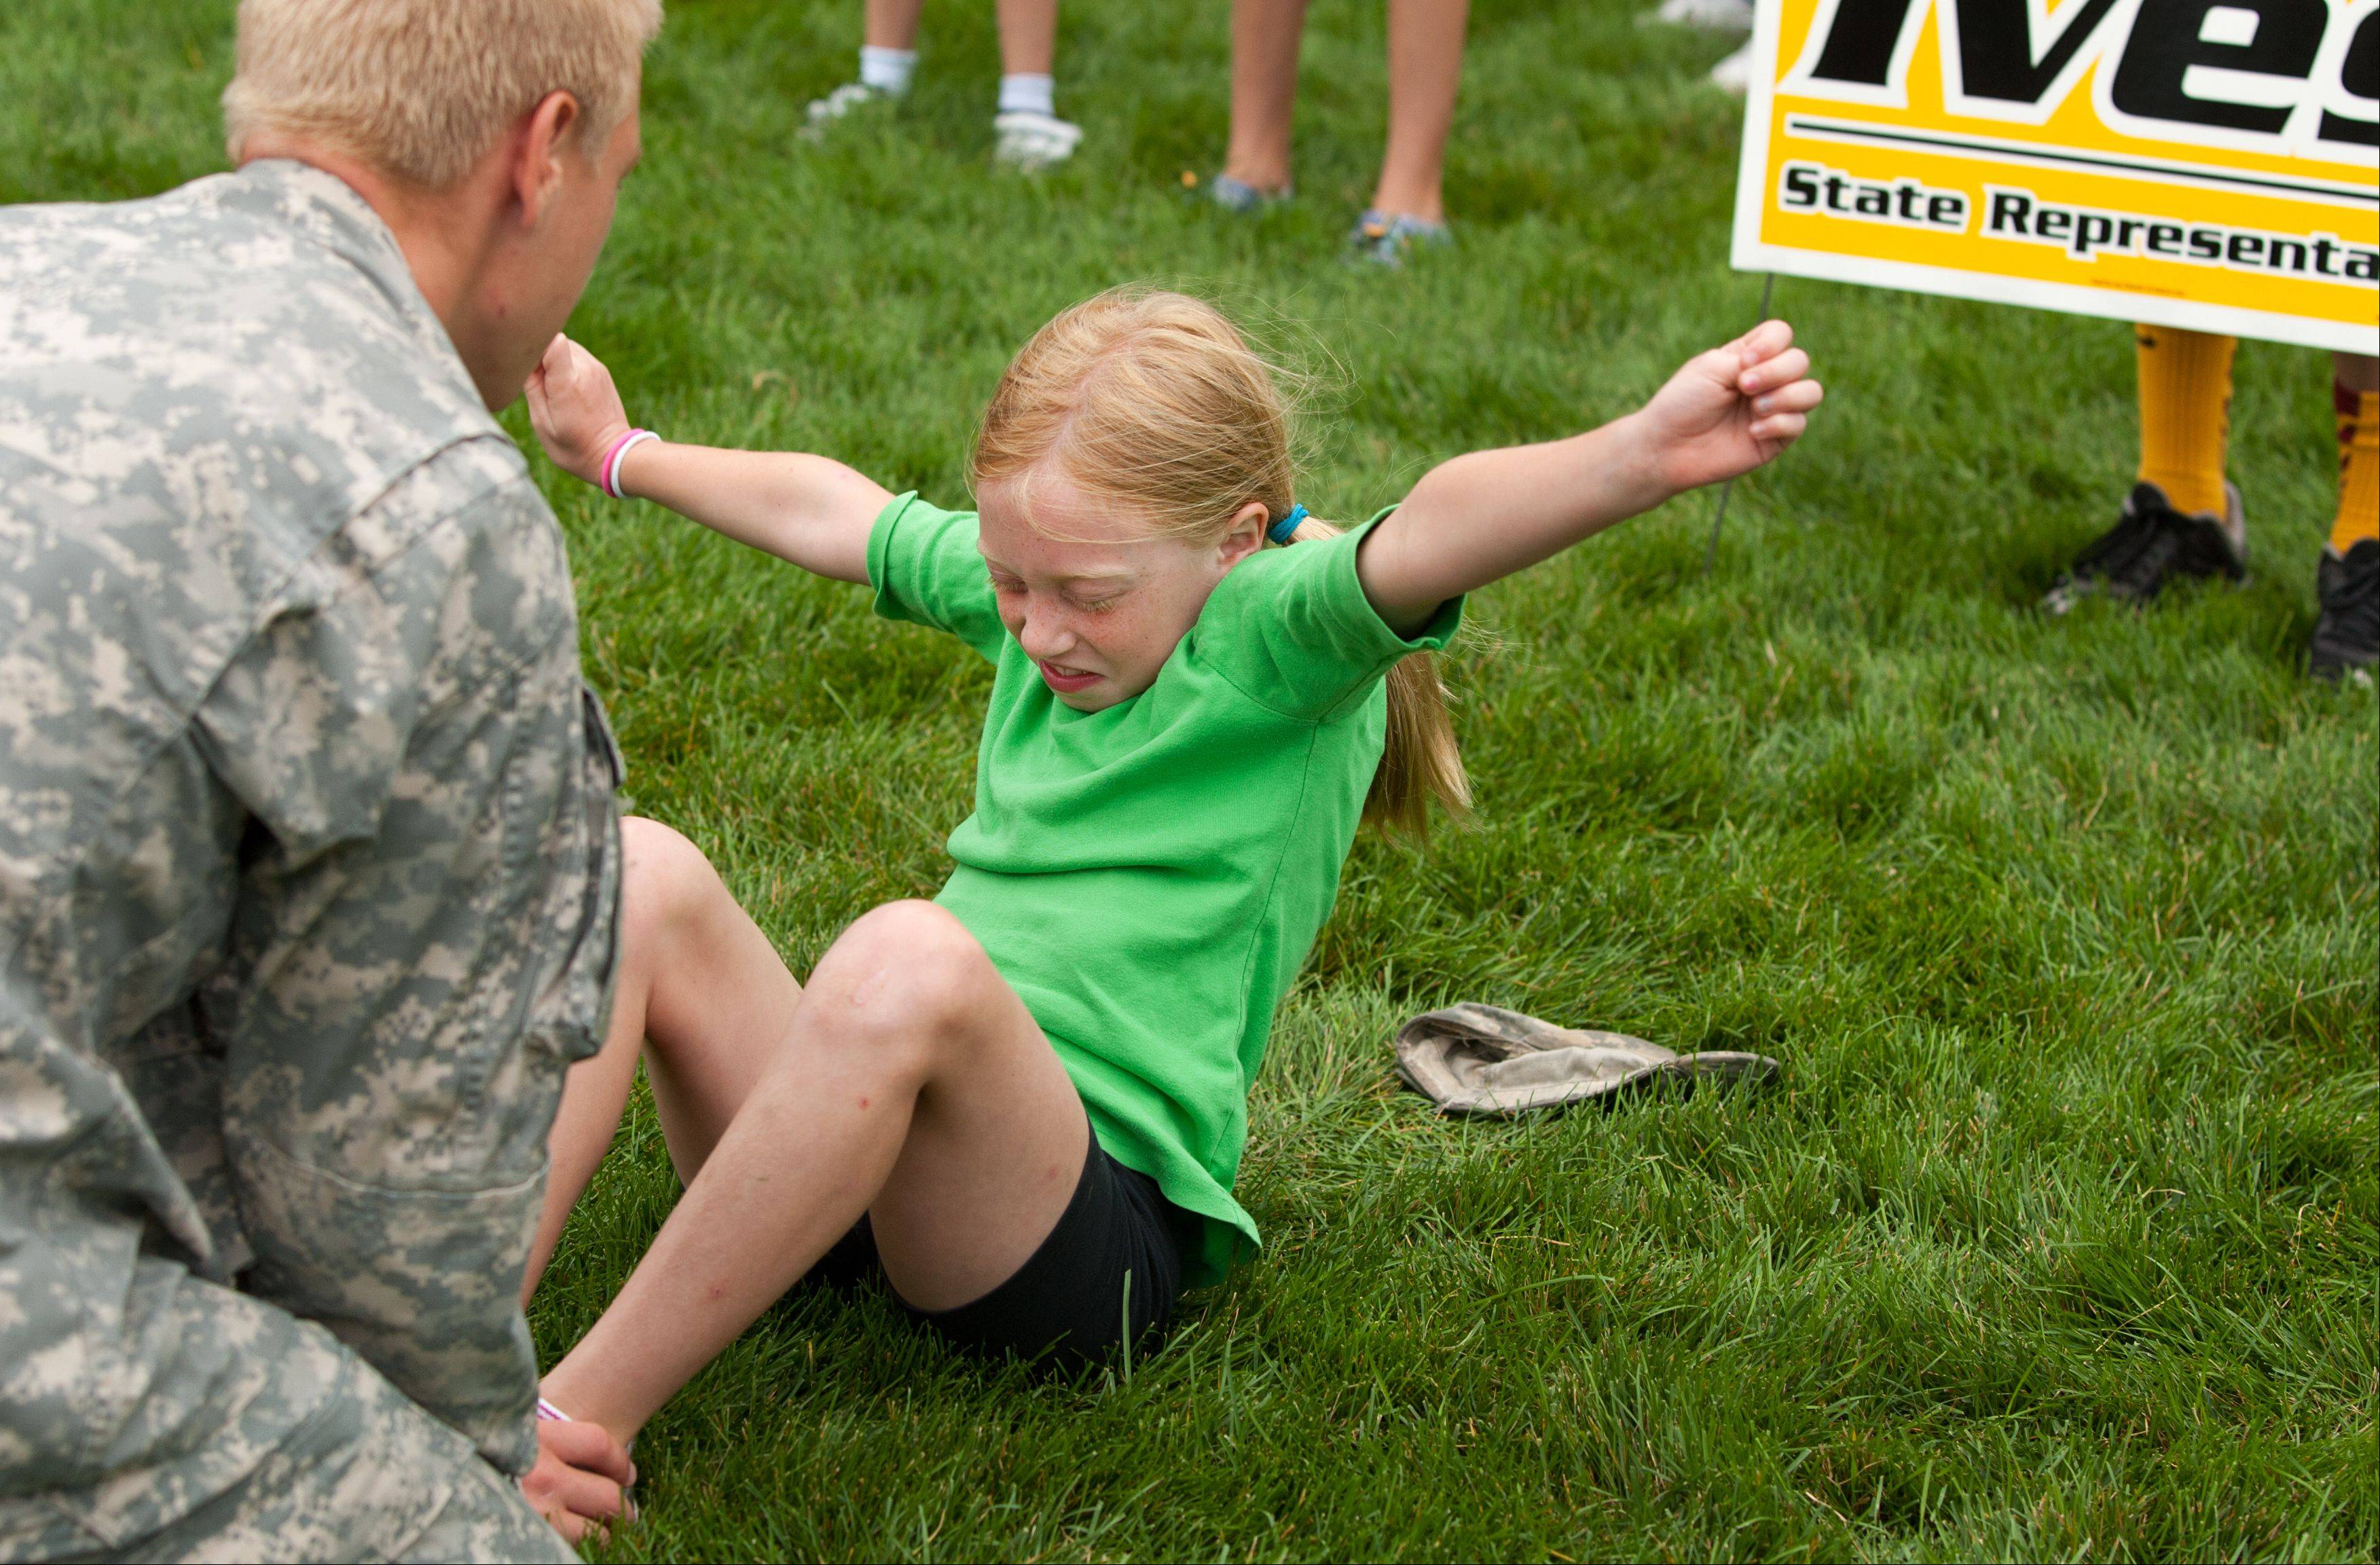 Louisa Ives, 9, of Wheaton, perfects her timed sit-ups with her brother, Nick, a cadet at West Point, during the inaugural health and fitness boot camp for children ages 3 through 12 at Cantigny Park in Wheaton. State Rep. Jeanne Ives of Wheaton sponsored the free camp.